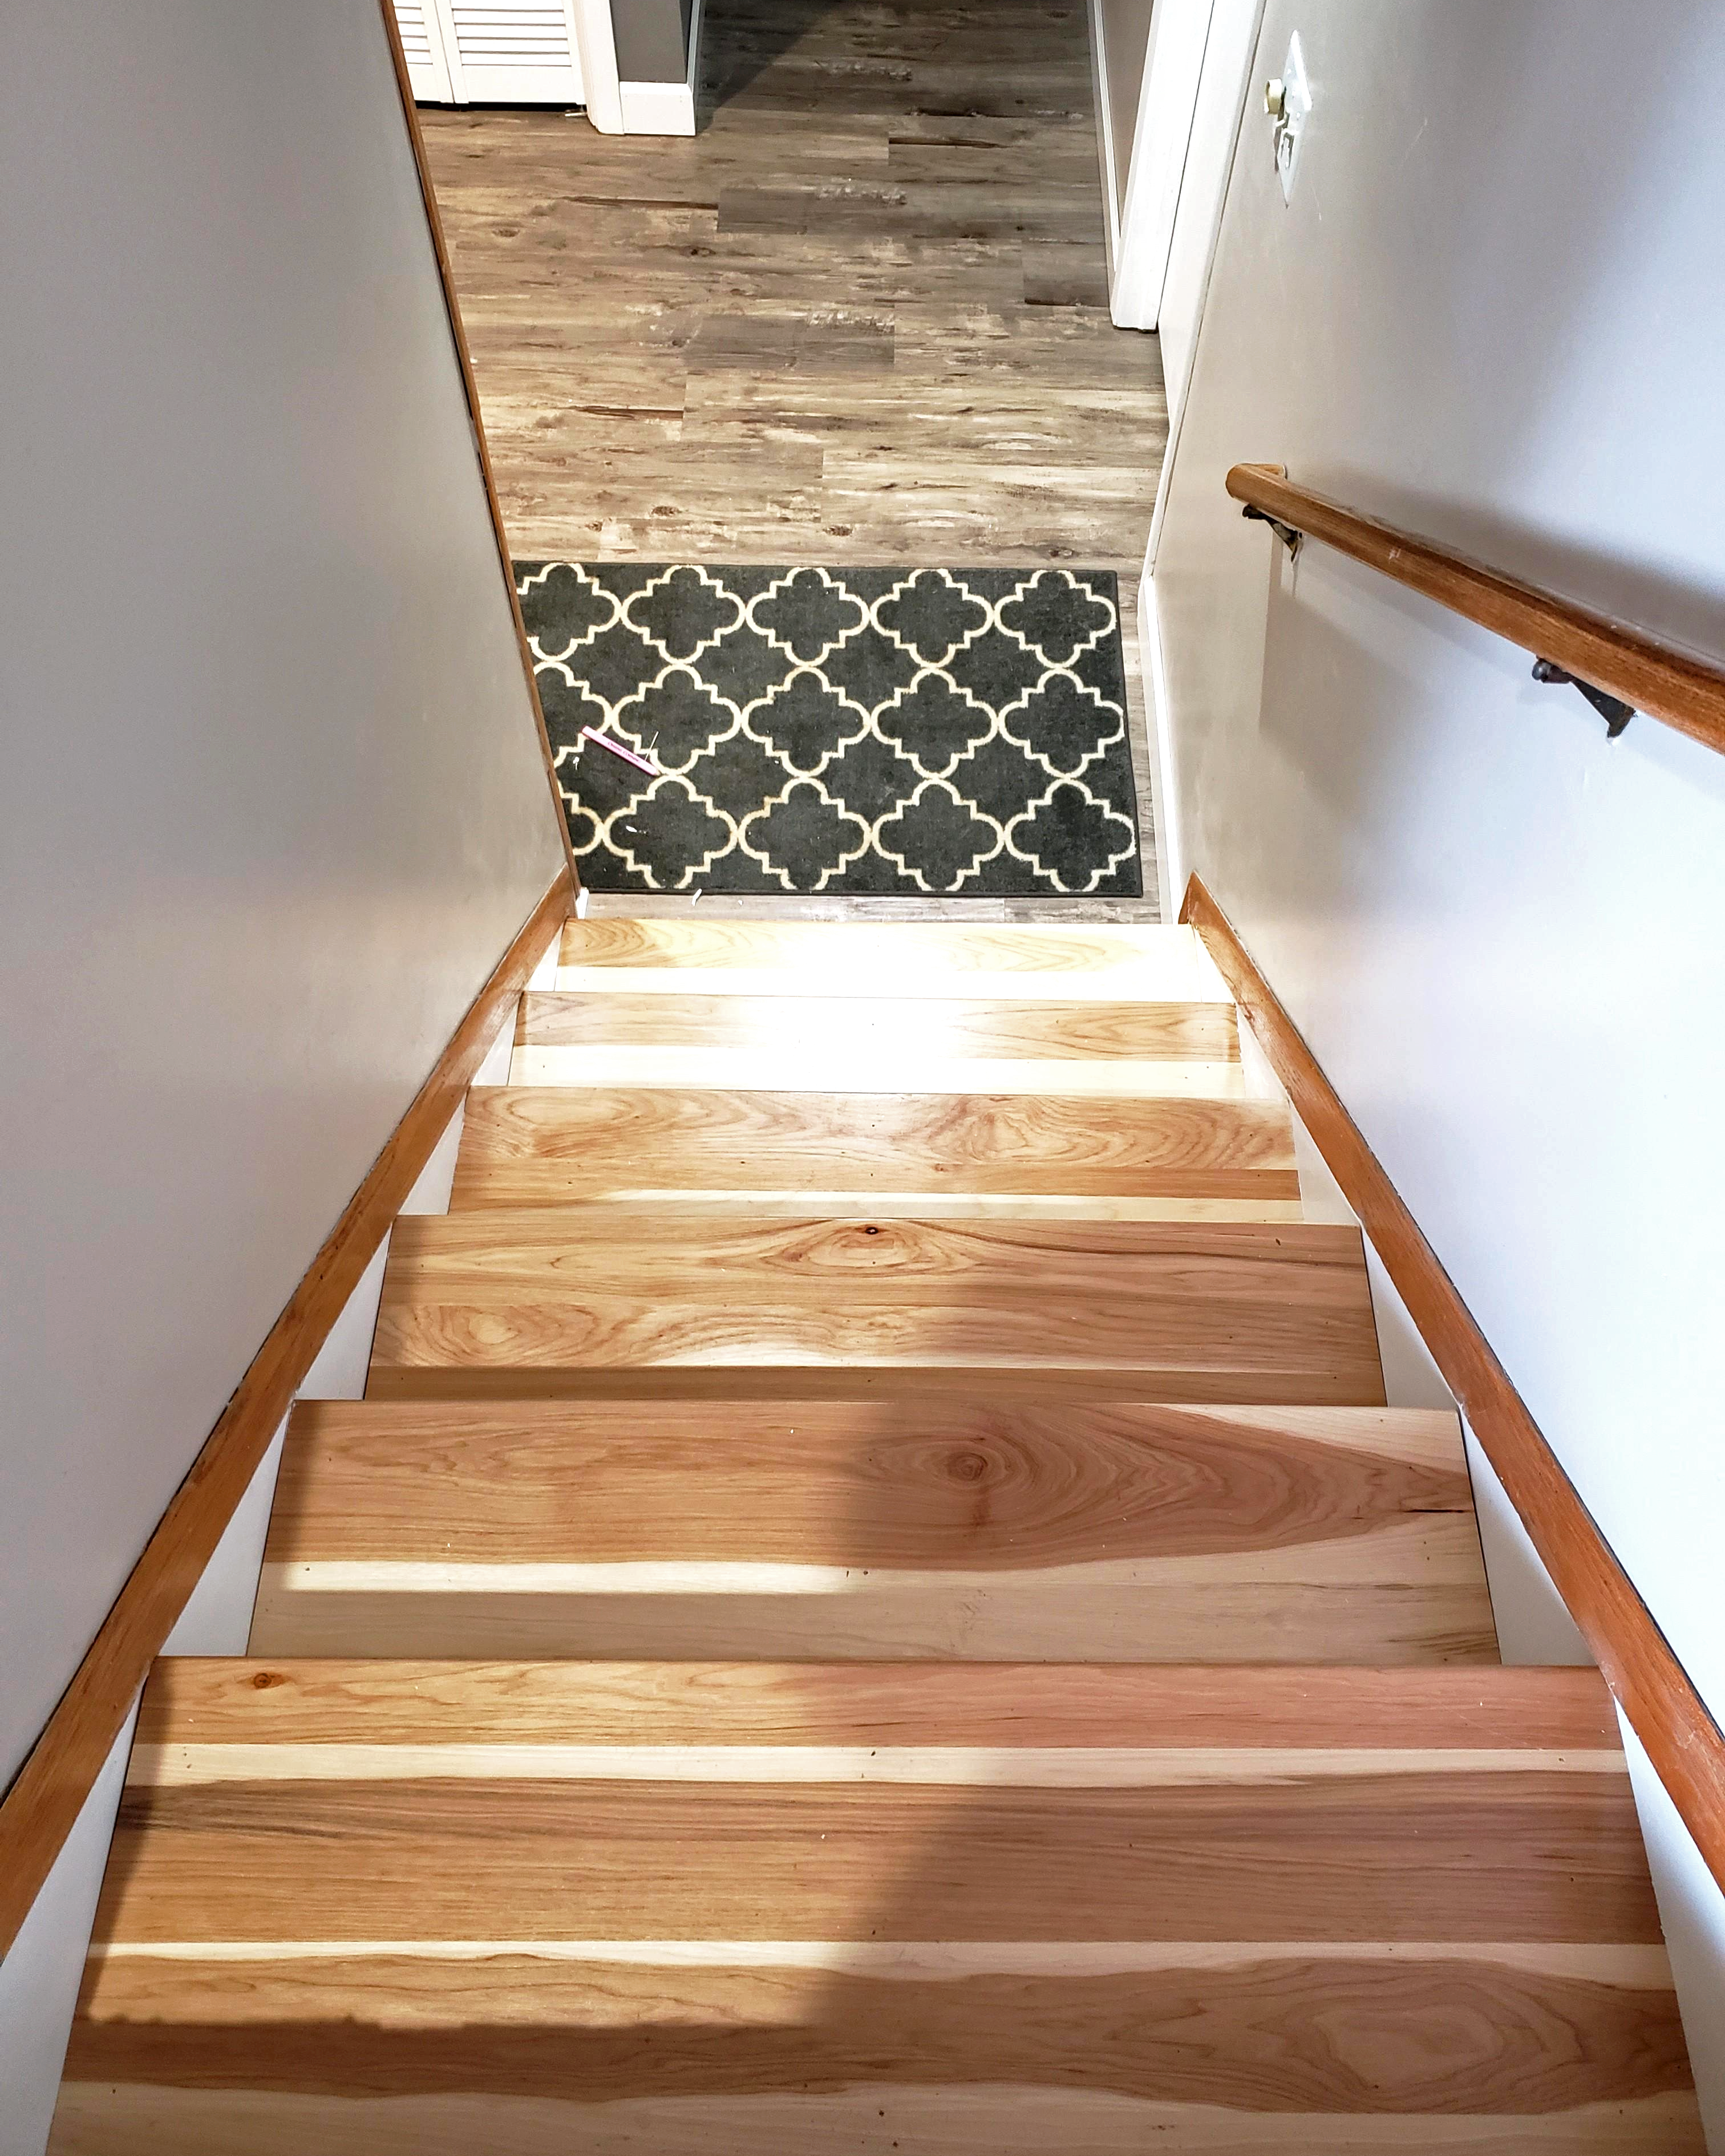 Character Hickory Stair Tread In 2020 Stairs Stair Treads Wood | Prefinished Hickory Stair Treads And Risers | Stair Parts | Hickory Natural | Stairtek | Natural Prefinished | Oak Stair Nosing